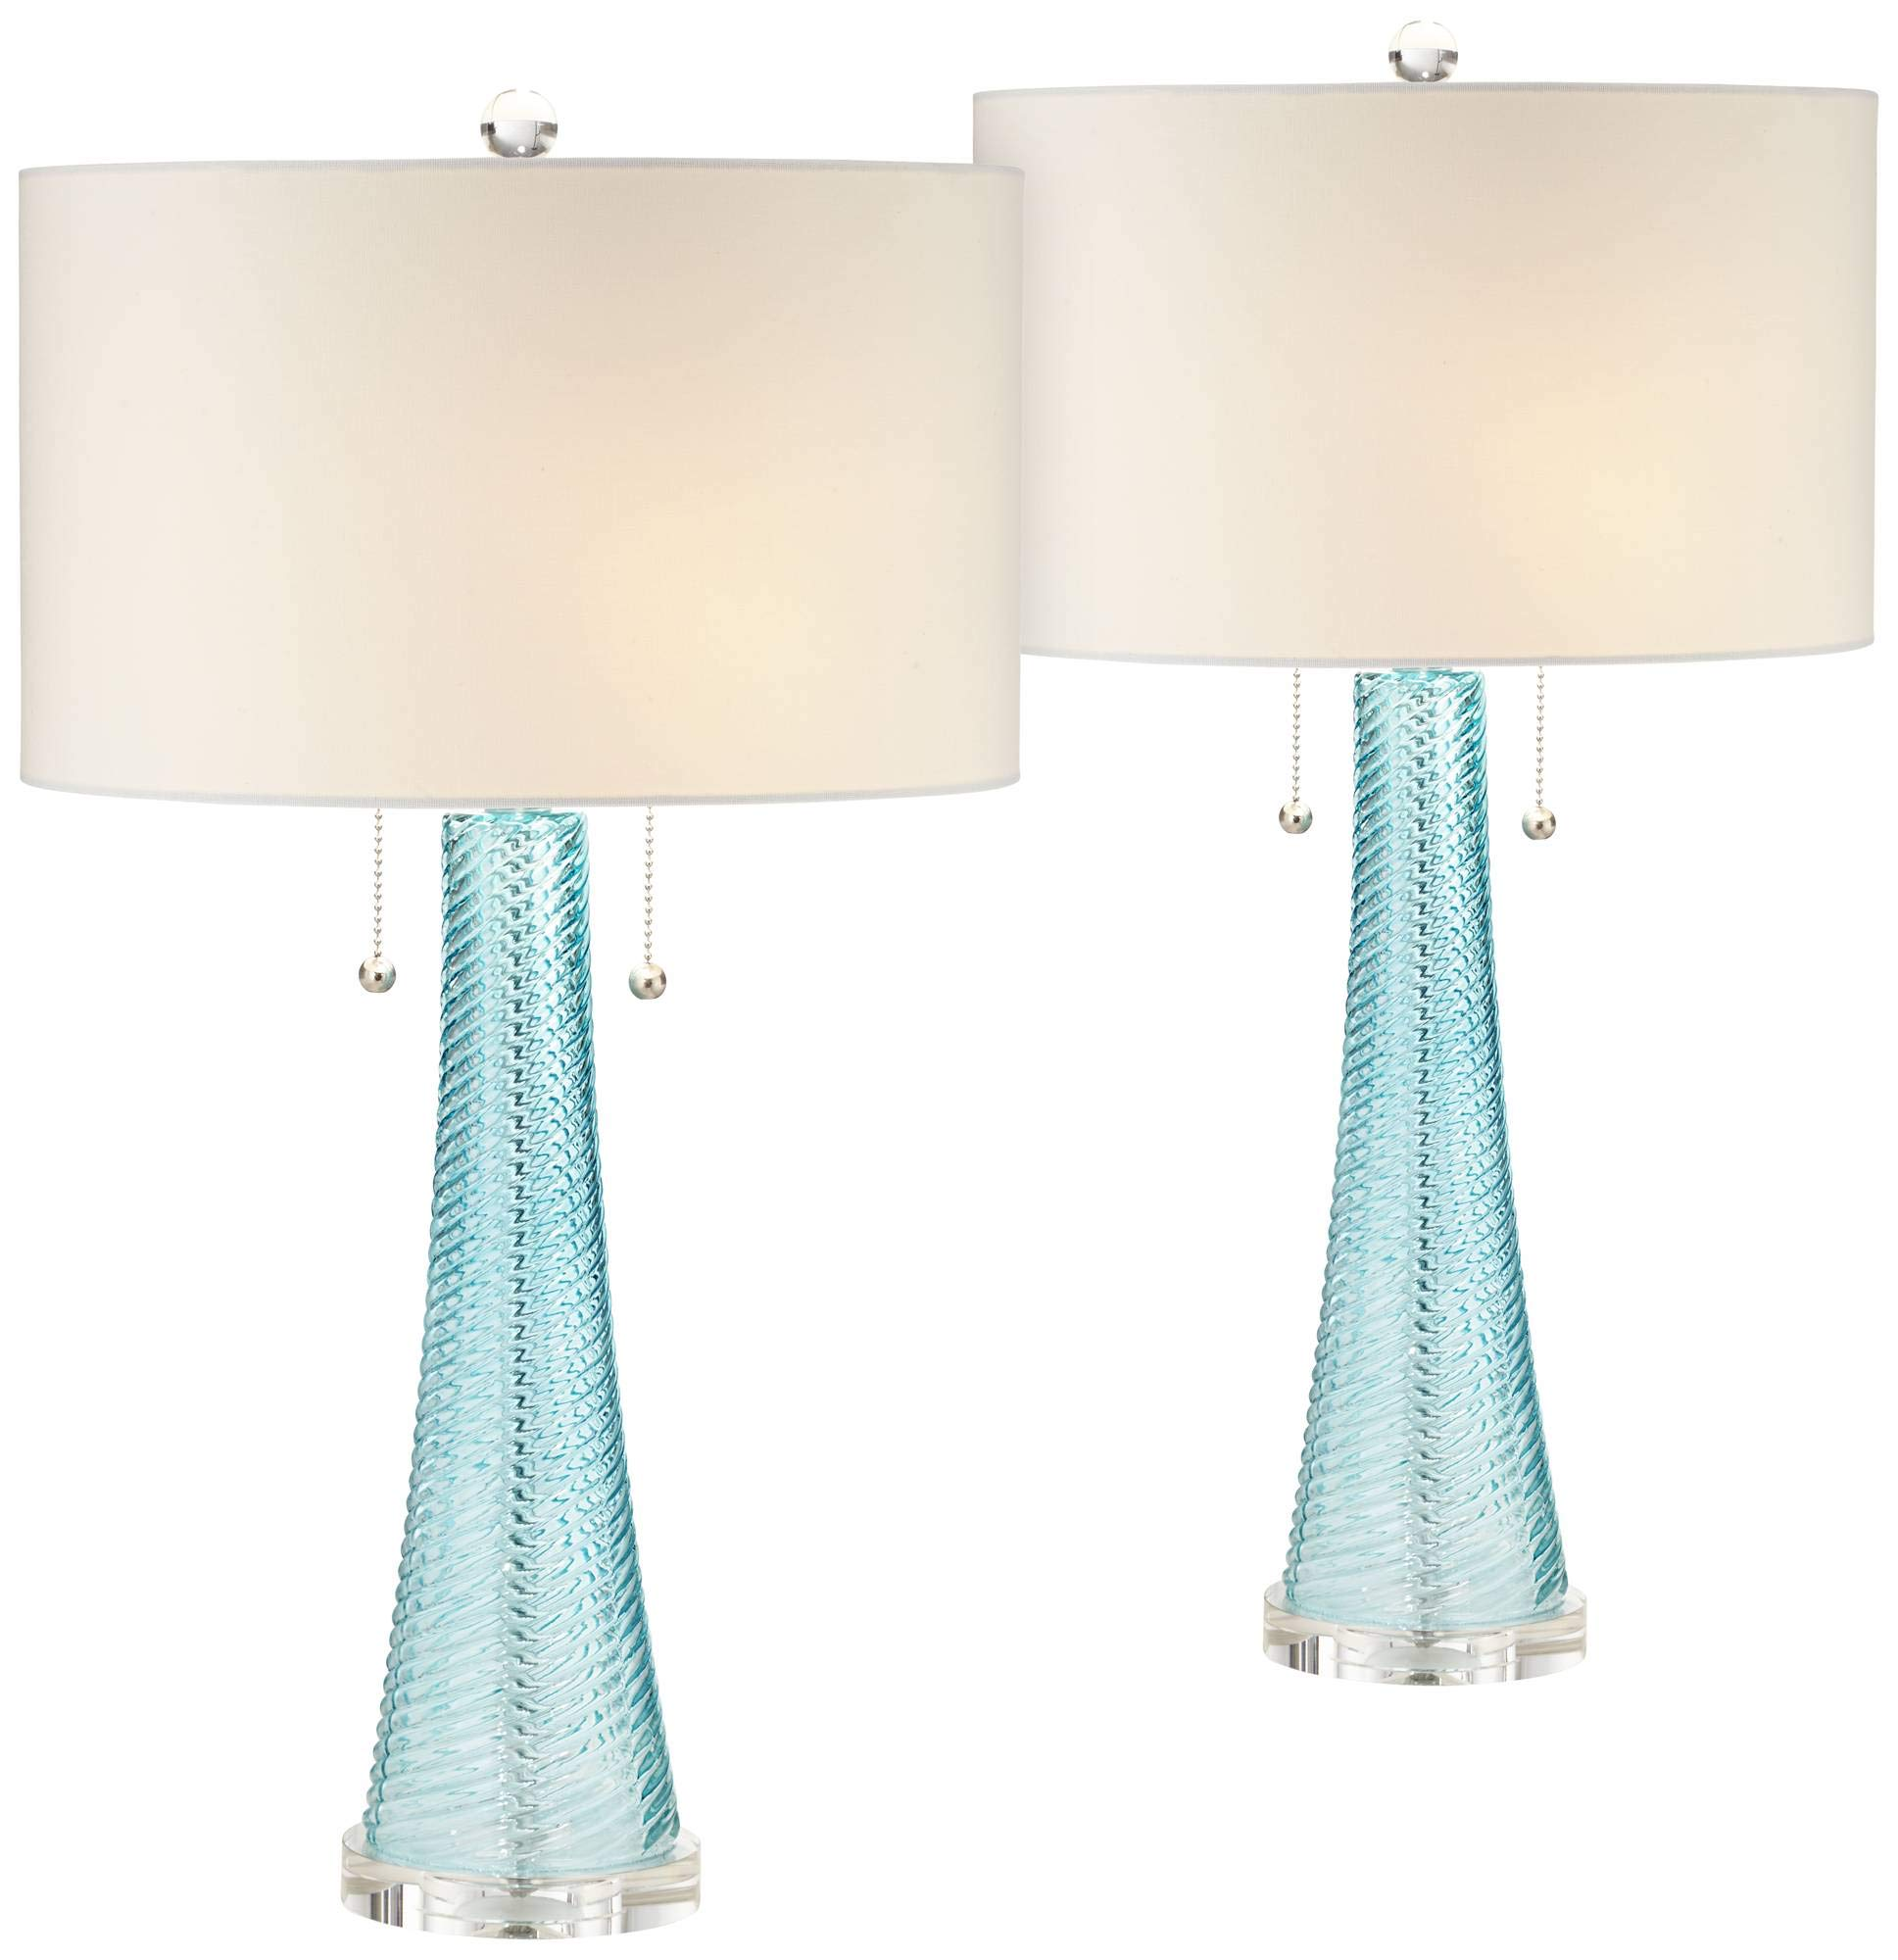 Miriam Modern Table Lamps Set of 2 Light Sky Blue Fluted Glass with Swirl Pattern White Drum Shade for Living Room Bedroom Bedside Nightstand Office Family - Possini Euro Design